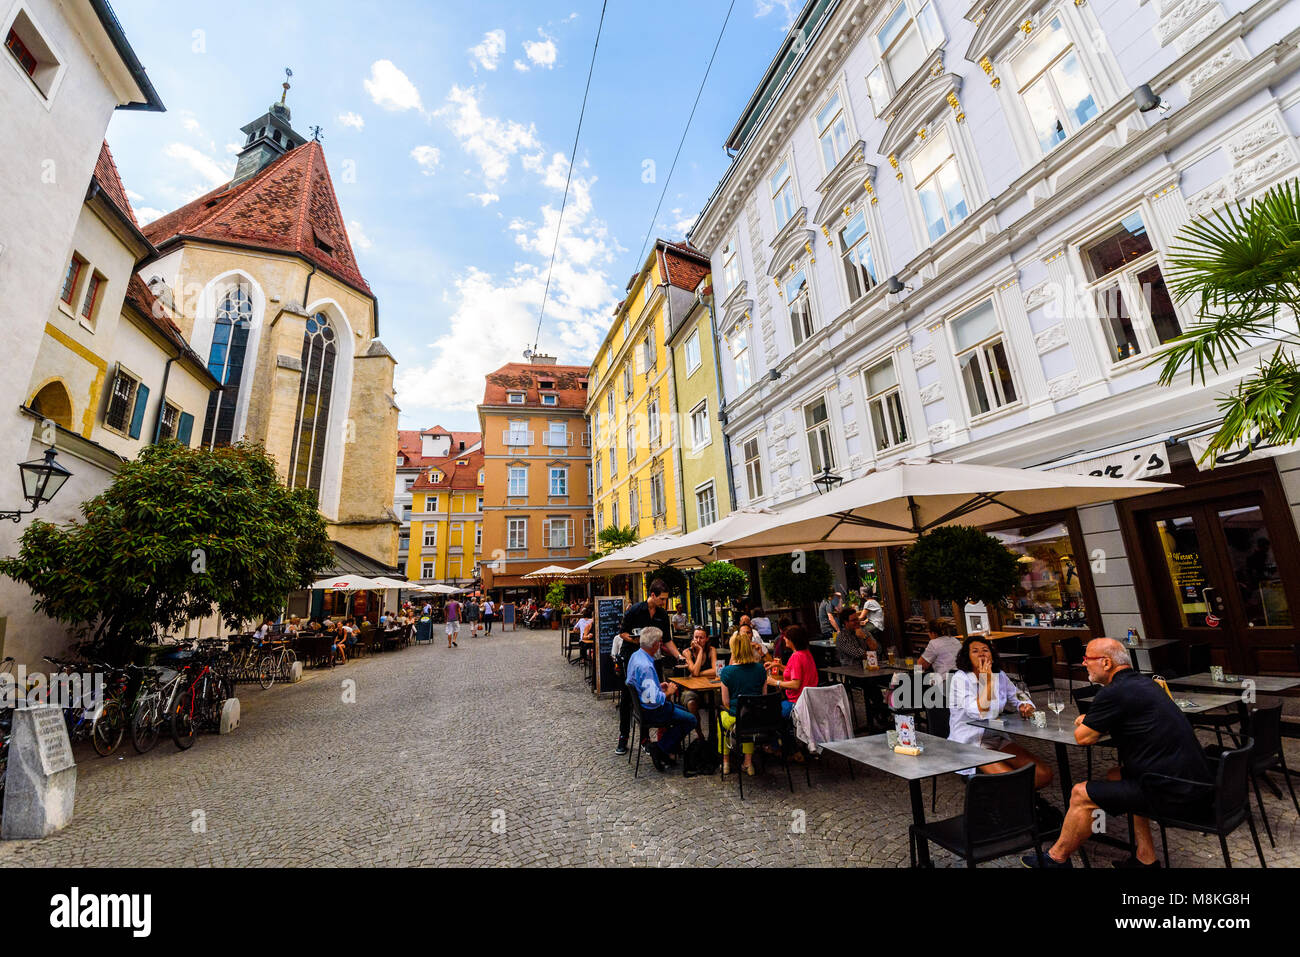 Graz, Styria / Austria - 07 09 2016 : One of colorful alleys in Graz city with historical buildings church and restaurants Stock Photo